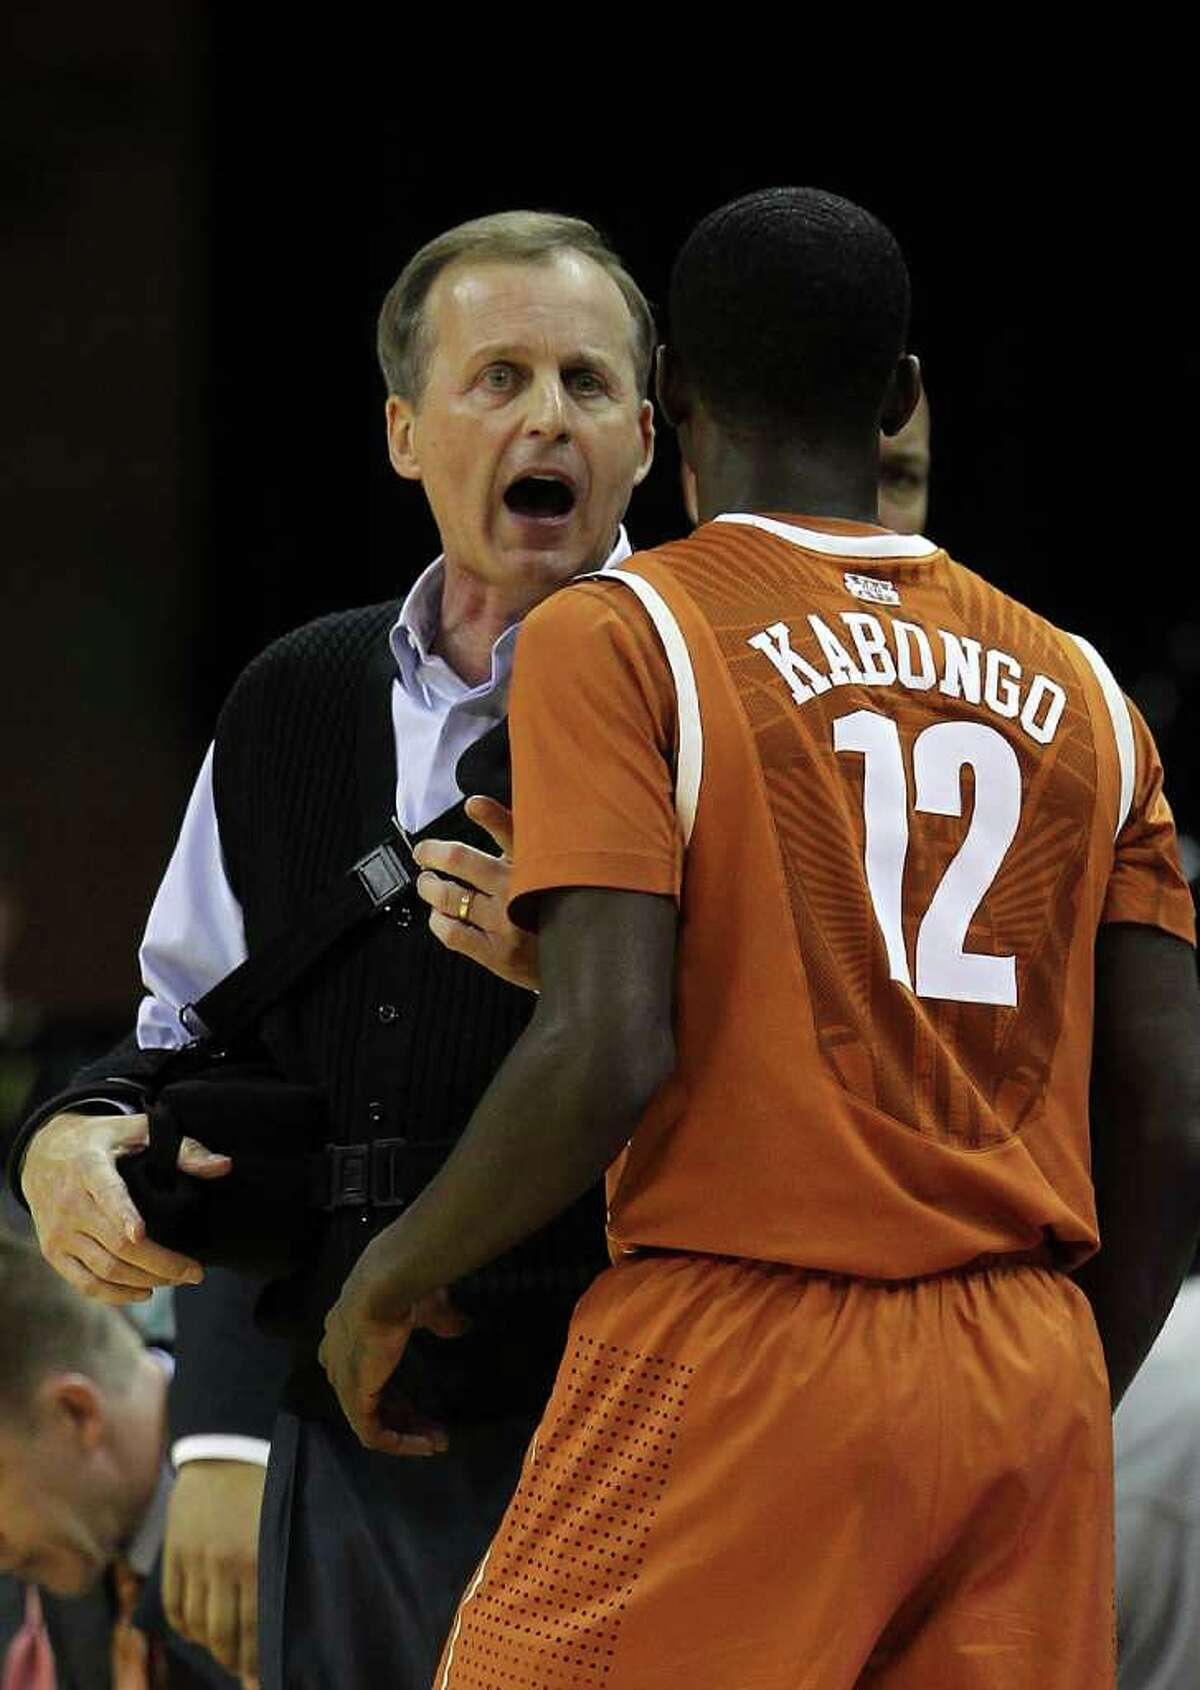 Salary : $2,400,000 Title: University of Texas head men's basketball coach Current as of February 2012. Source:Texas Tribune